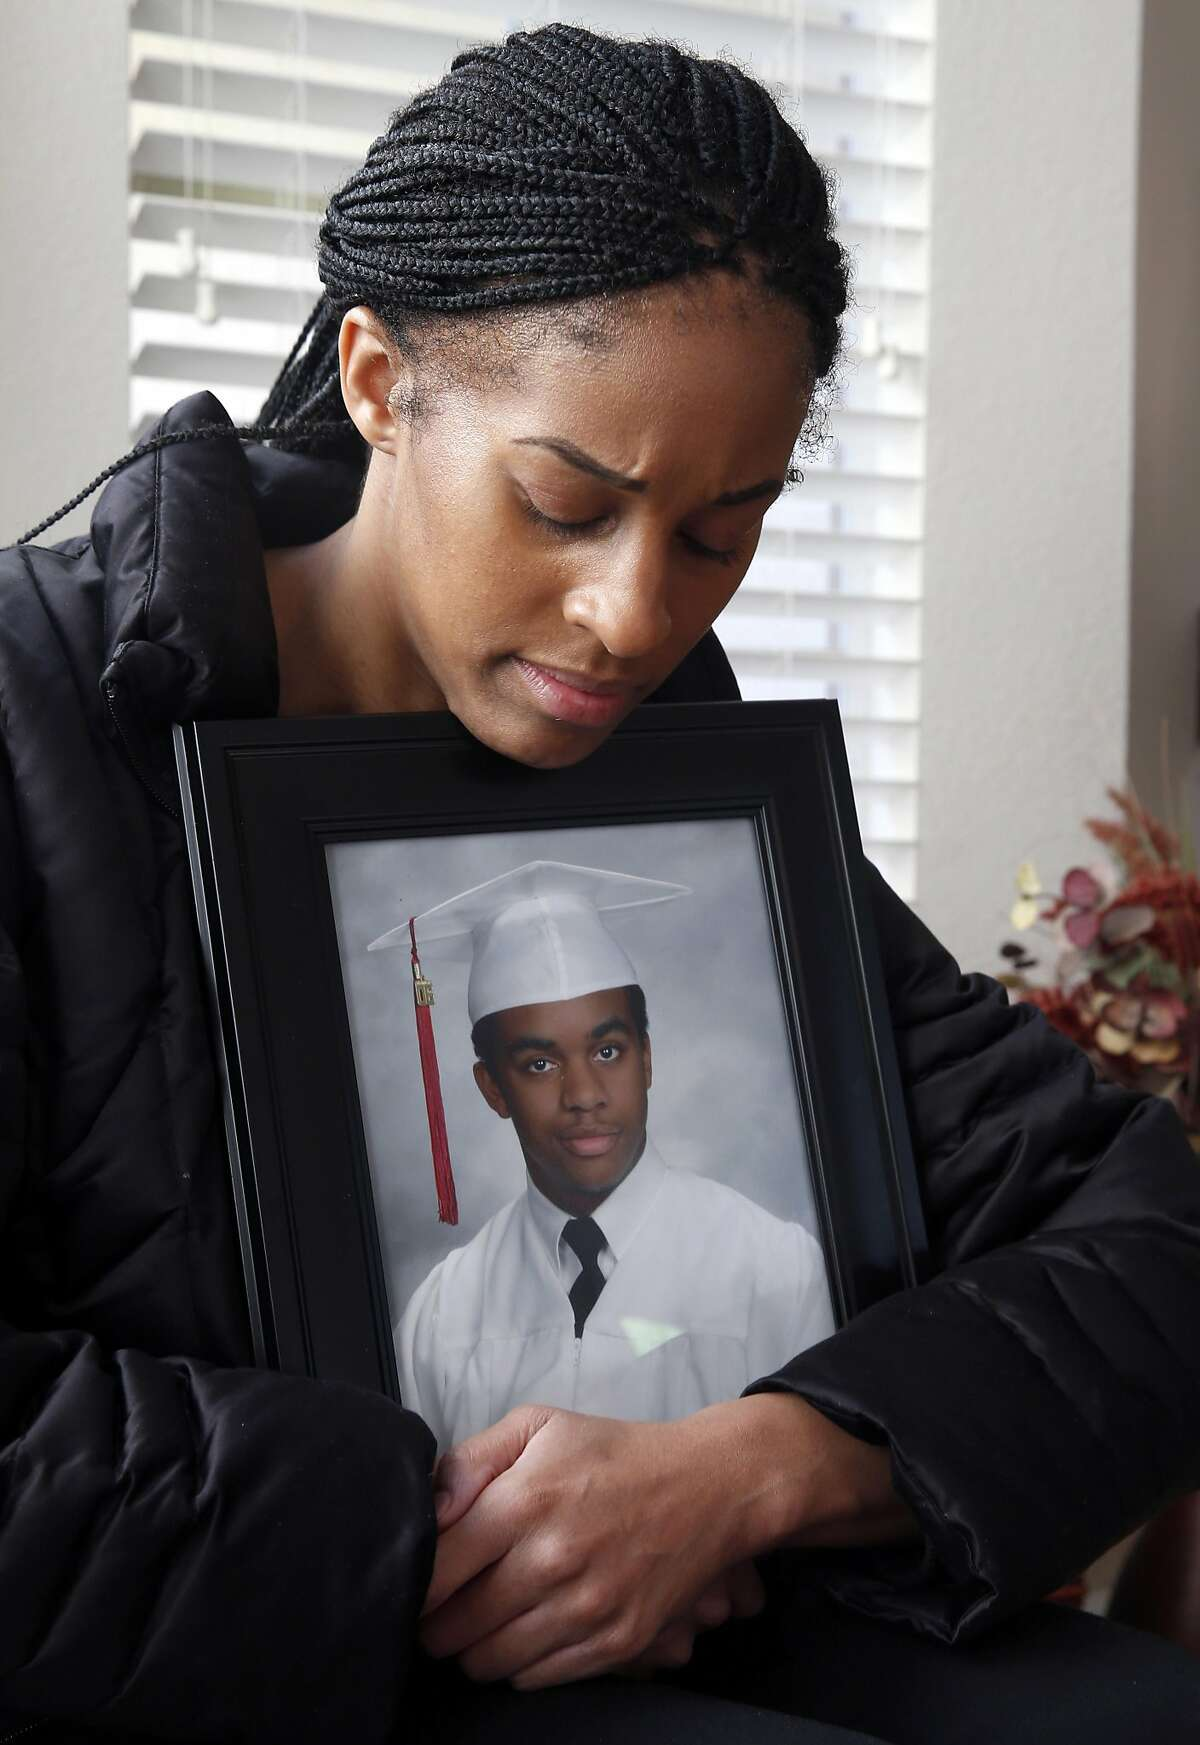 Stacey Sims clutches a portrait of her brother William Sims at her family's home in Richmond, Calif. on Wednesday, Nov. 23, 2016. One man is in custody and two others are being sought for the murder of William Sims, 28, which police has labeled as a hate crime.